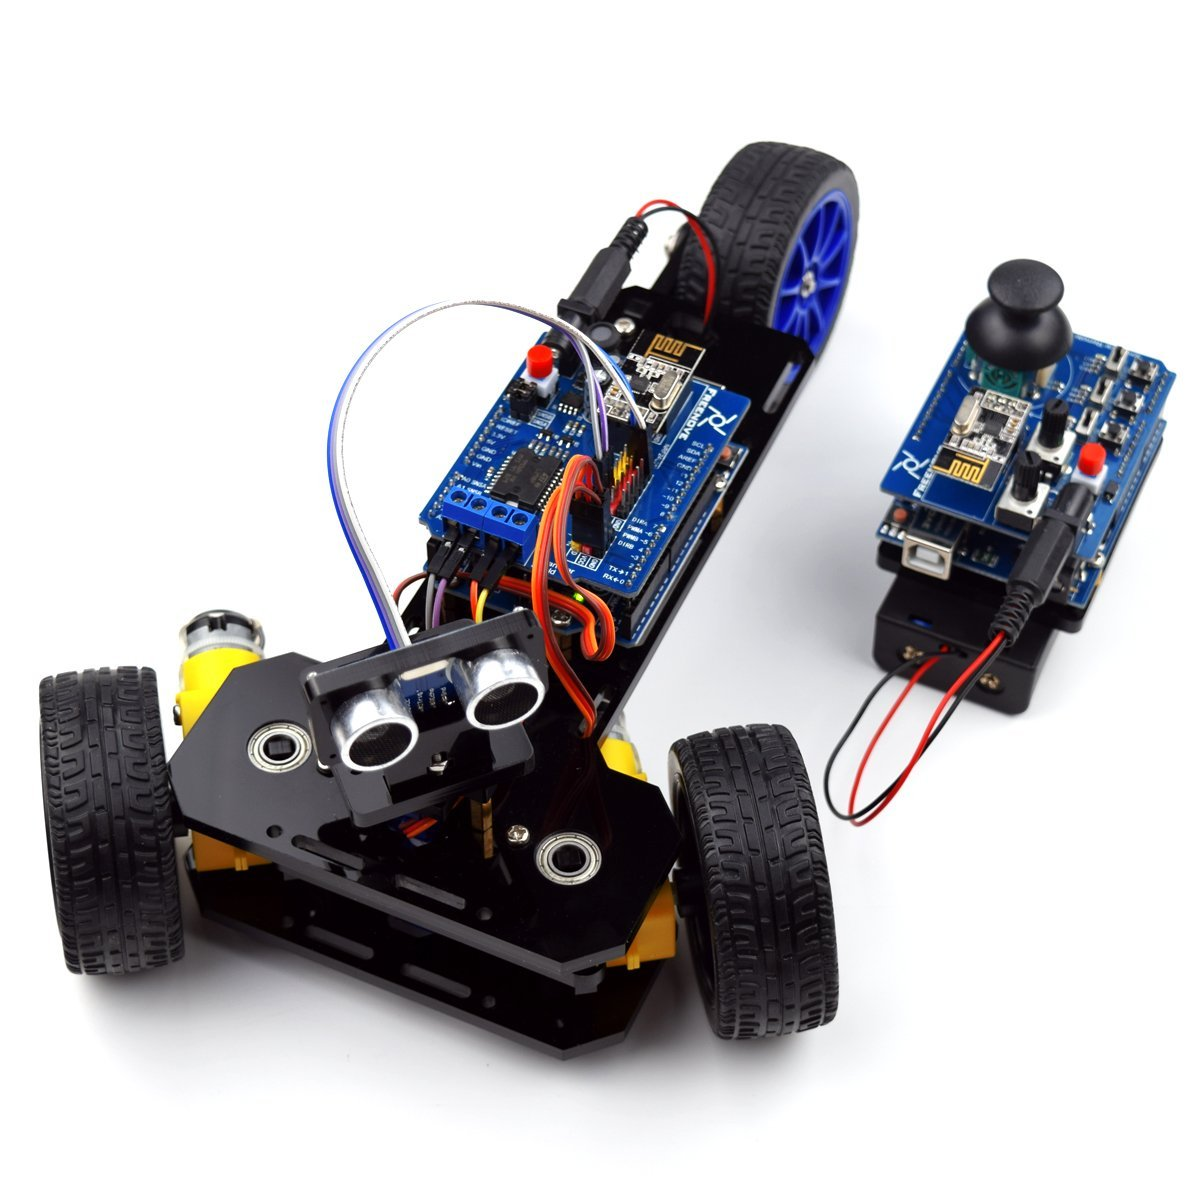 Adeept Three-wheeled Smart Car Kit for Arduino Robot with 2PCS UNO R3 Ultrasonic Obstacle Avoiding, 2.4G Wireless Remote Control